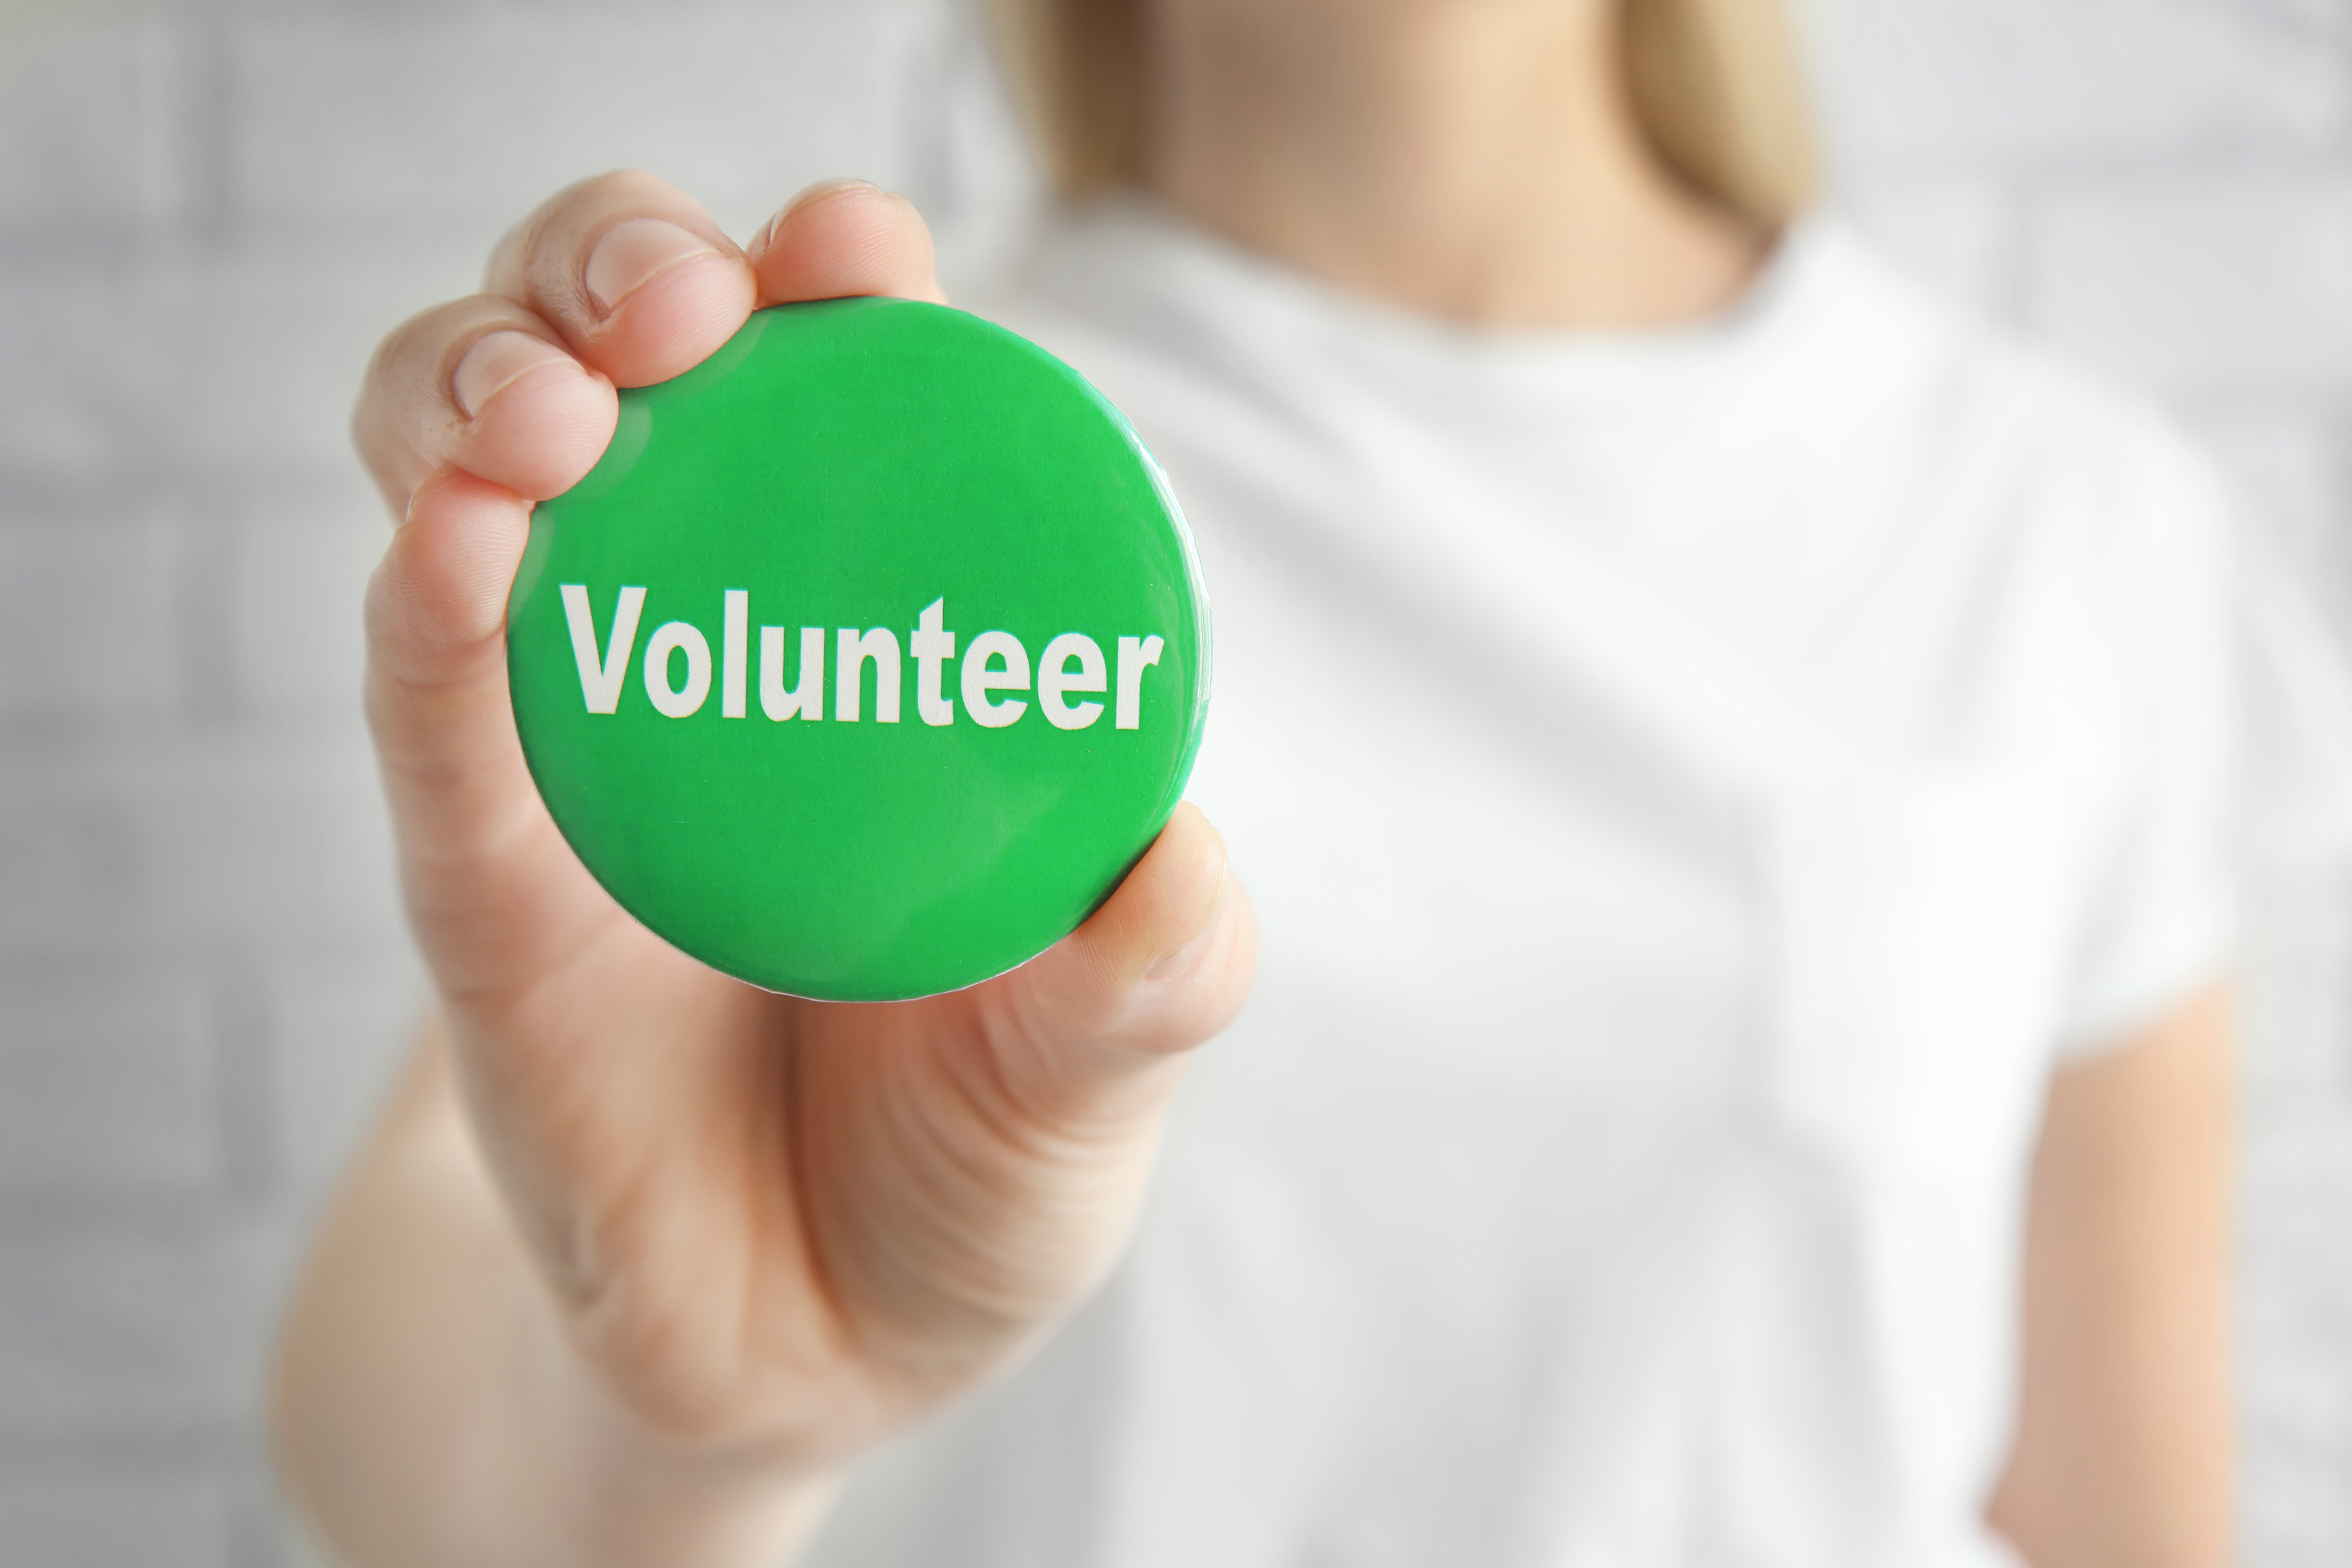 volunteer with button